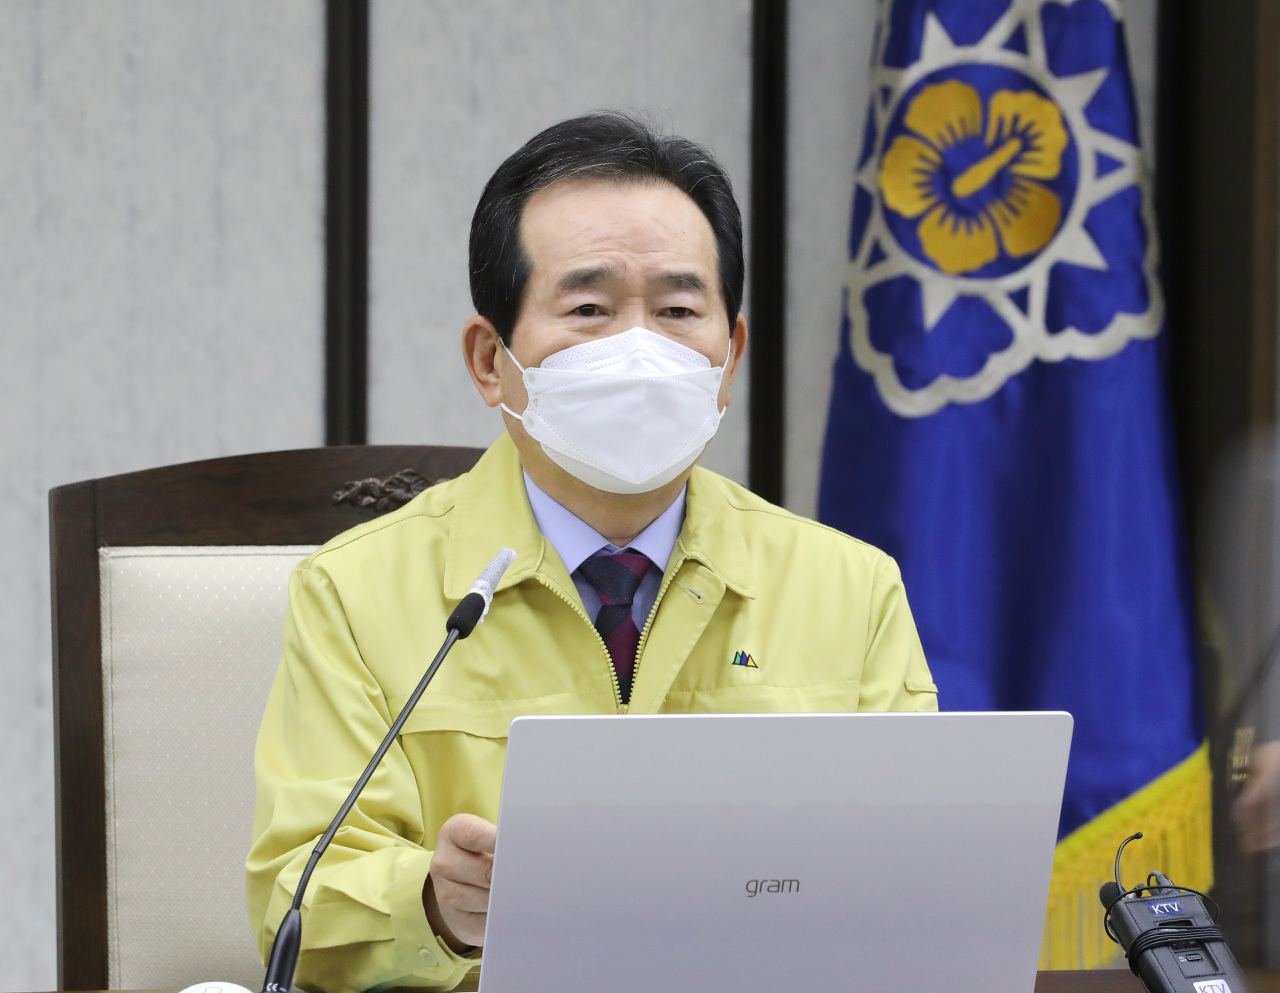 Prime Minister Chung Sye-kyun speaks during an interagency meeting on the COVID-19 response held at the government office complex in Sejong on Tuesday. (Yonhap)